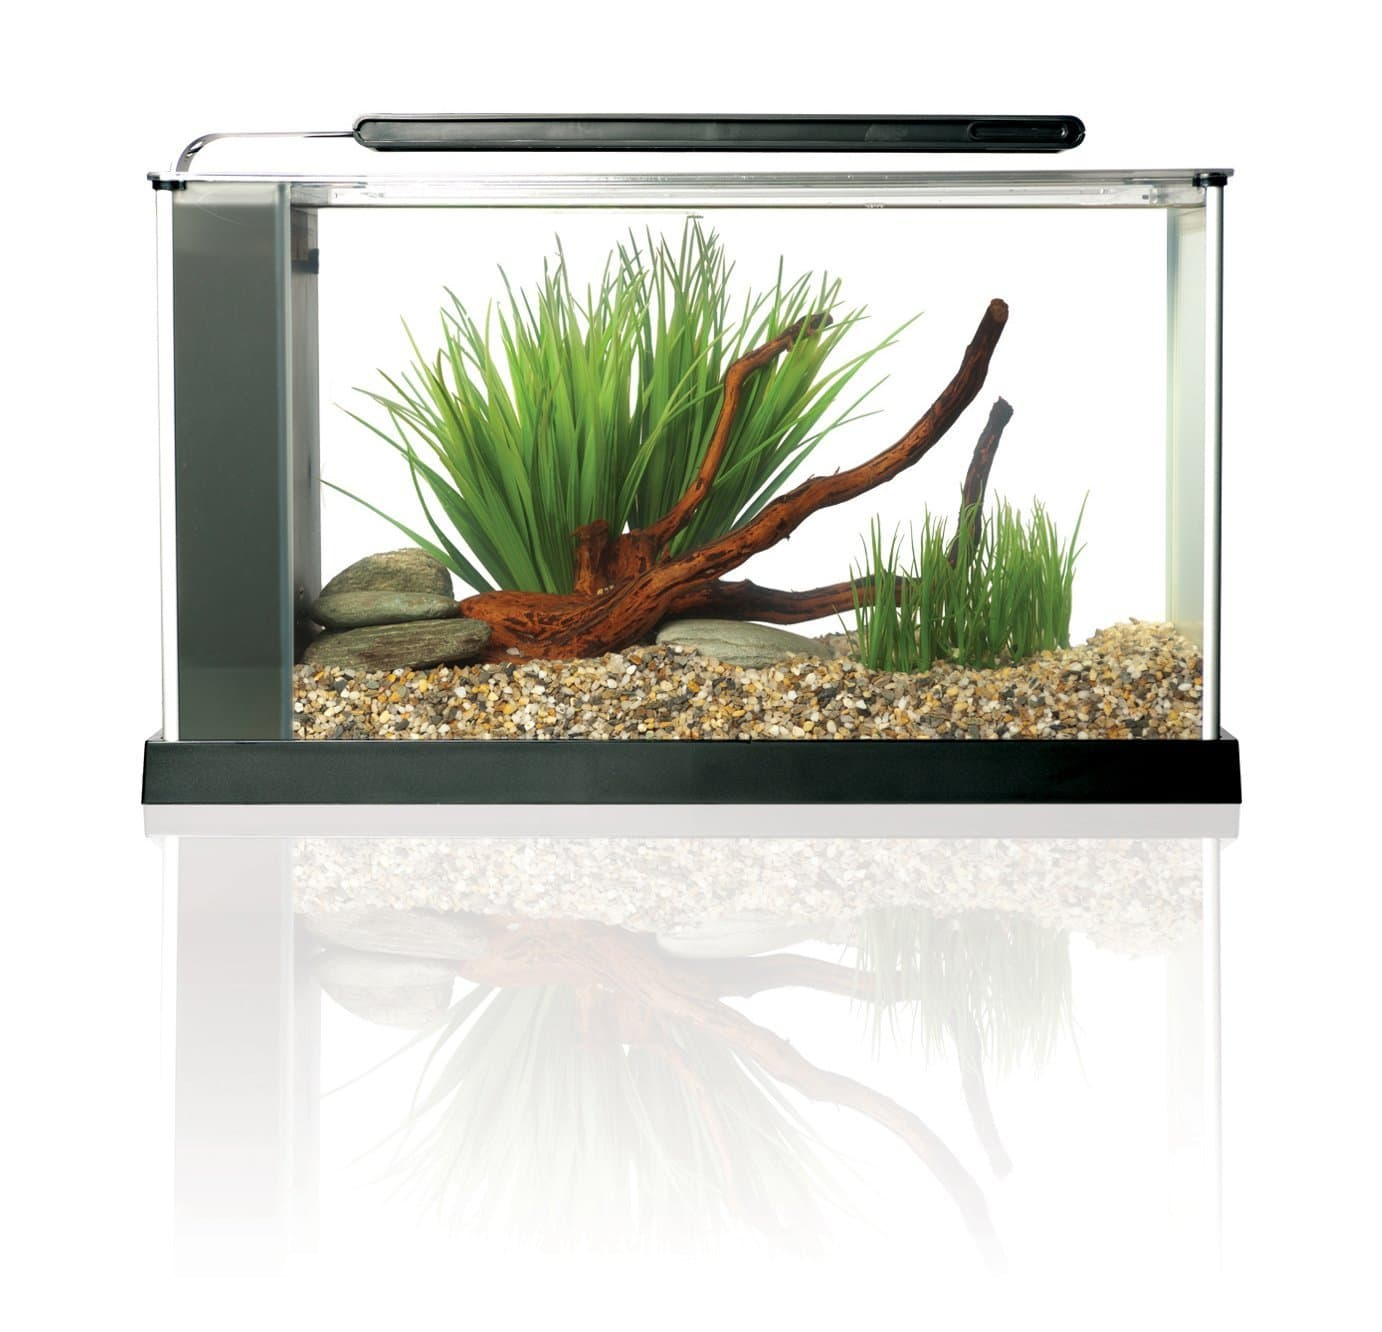 2018 Top 5 aquariums for bettas | Dr. Fox\'s Advice & Reviews